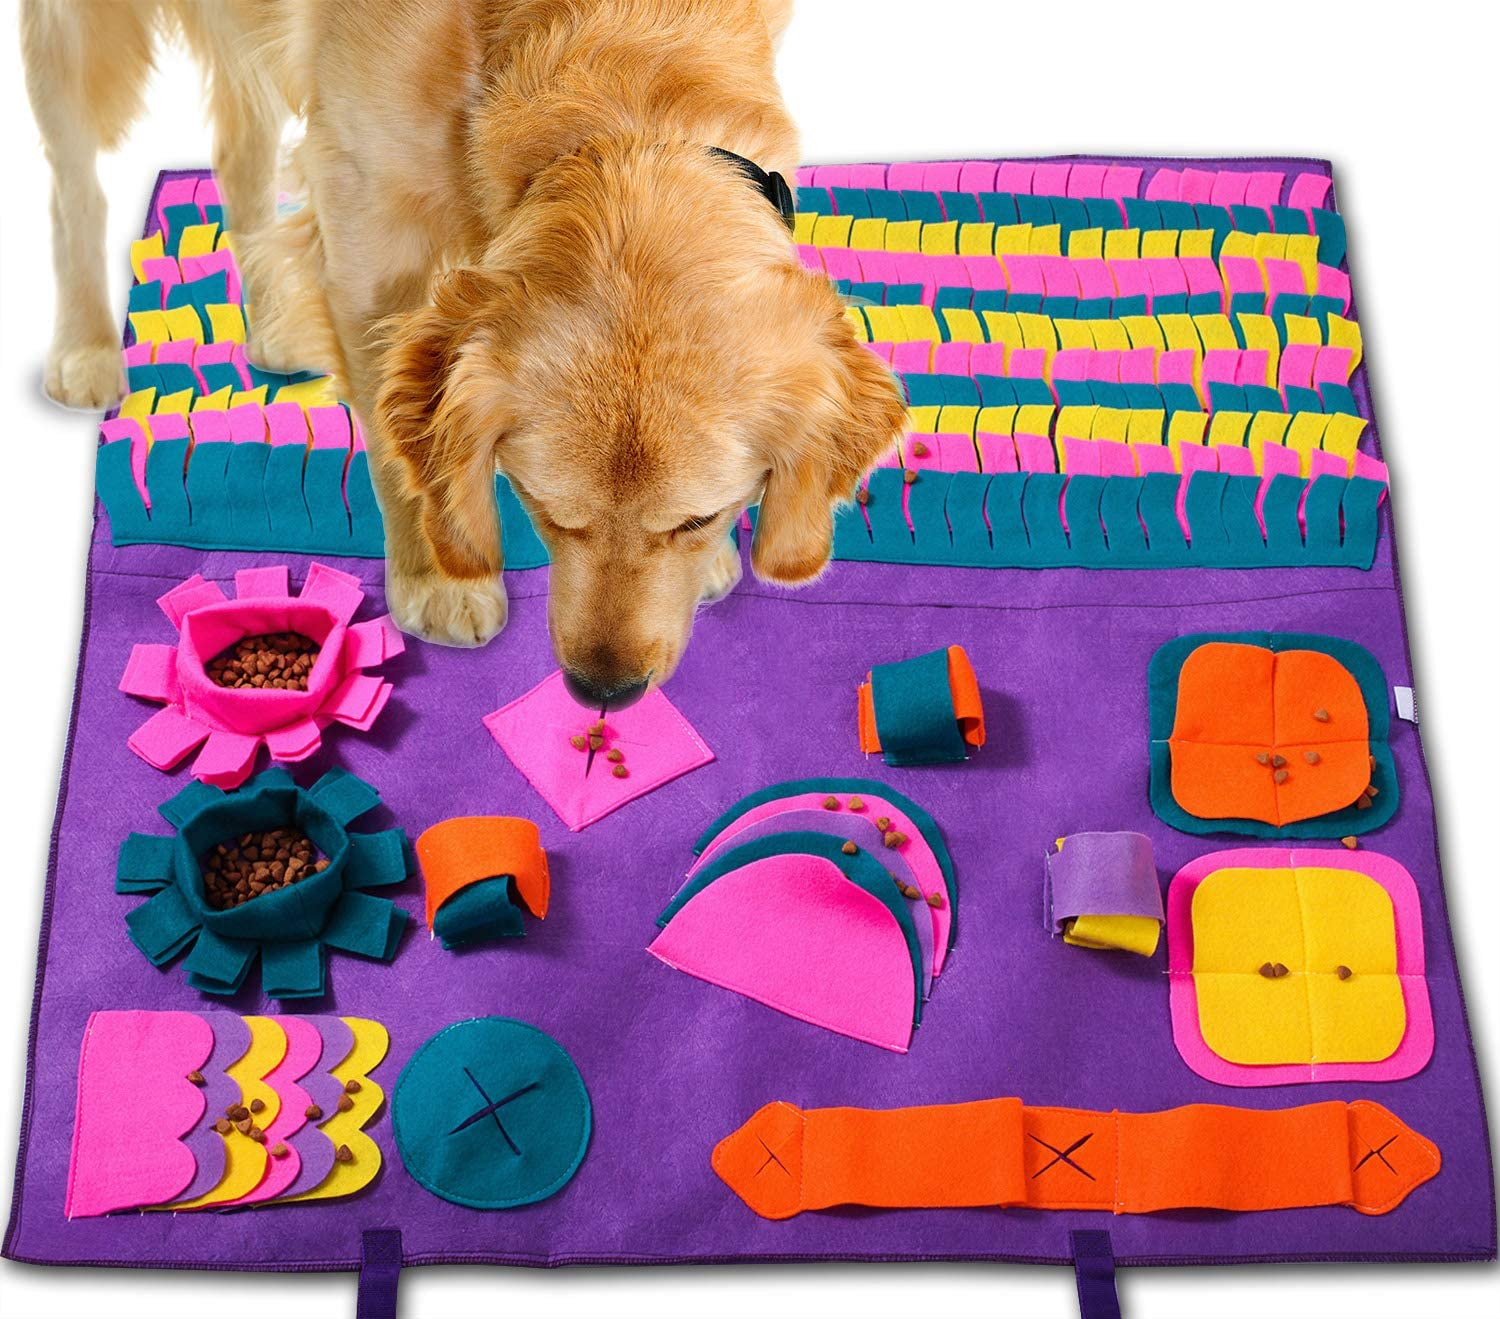 Buy PJDH Snuffle Mat for Dogs, Interactive Dog Toys Slow Feeding Mat Nose  Work Mat for Dogs Online in Vietnam. B07V69S1XH